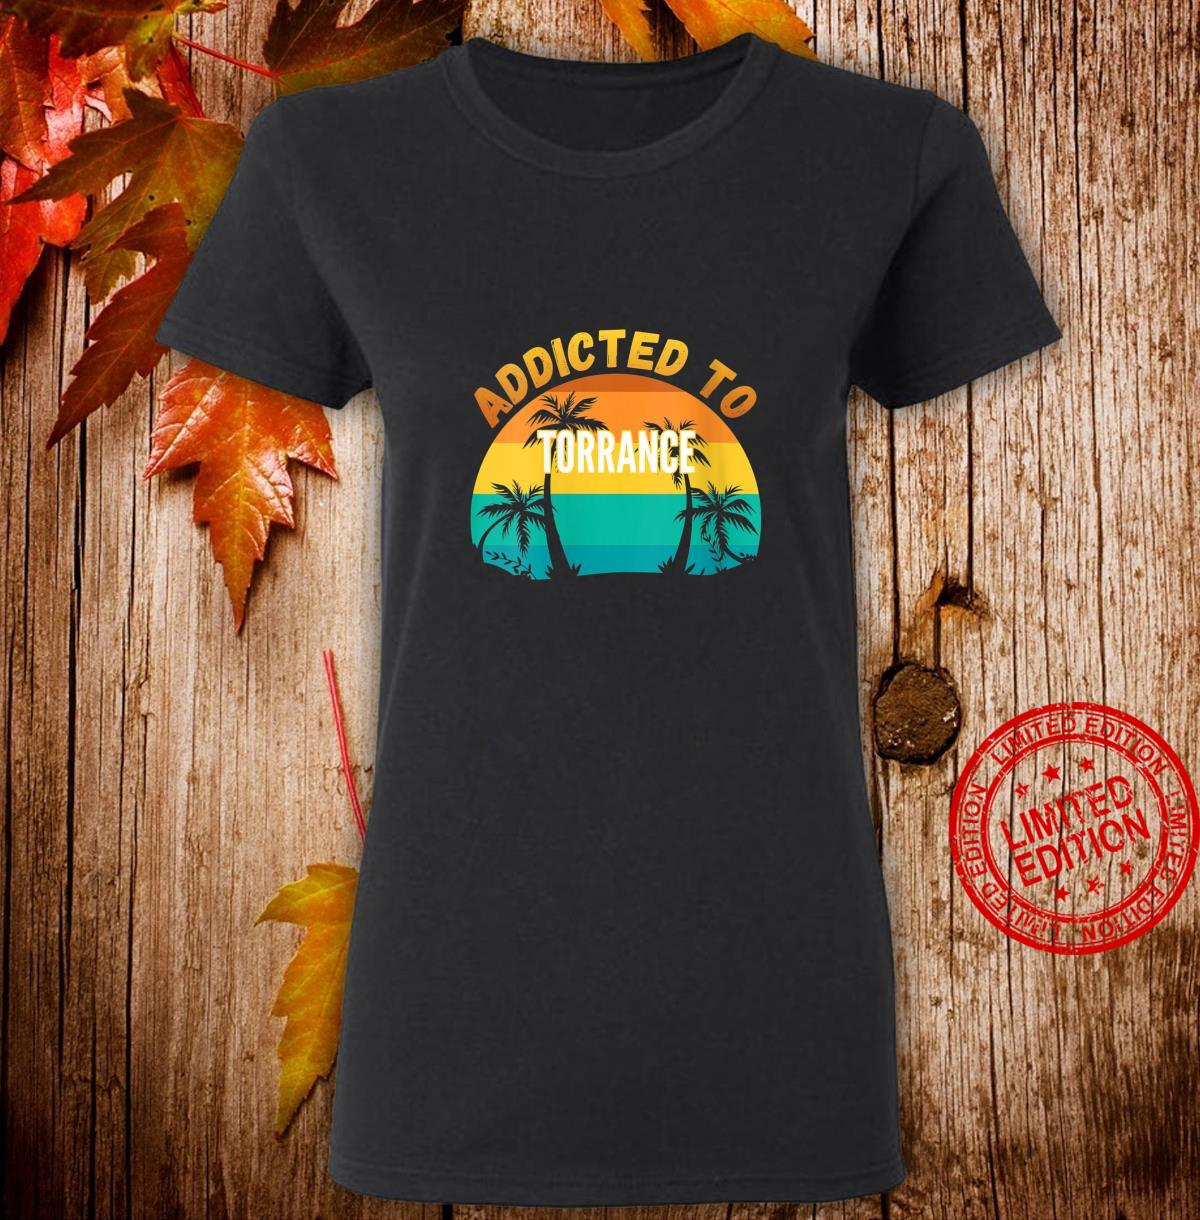 Womens Addicted to Torrance, From Torrance Shirt ladies tee